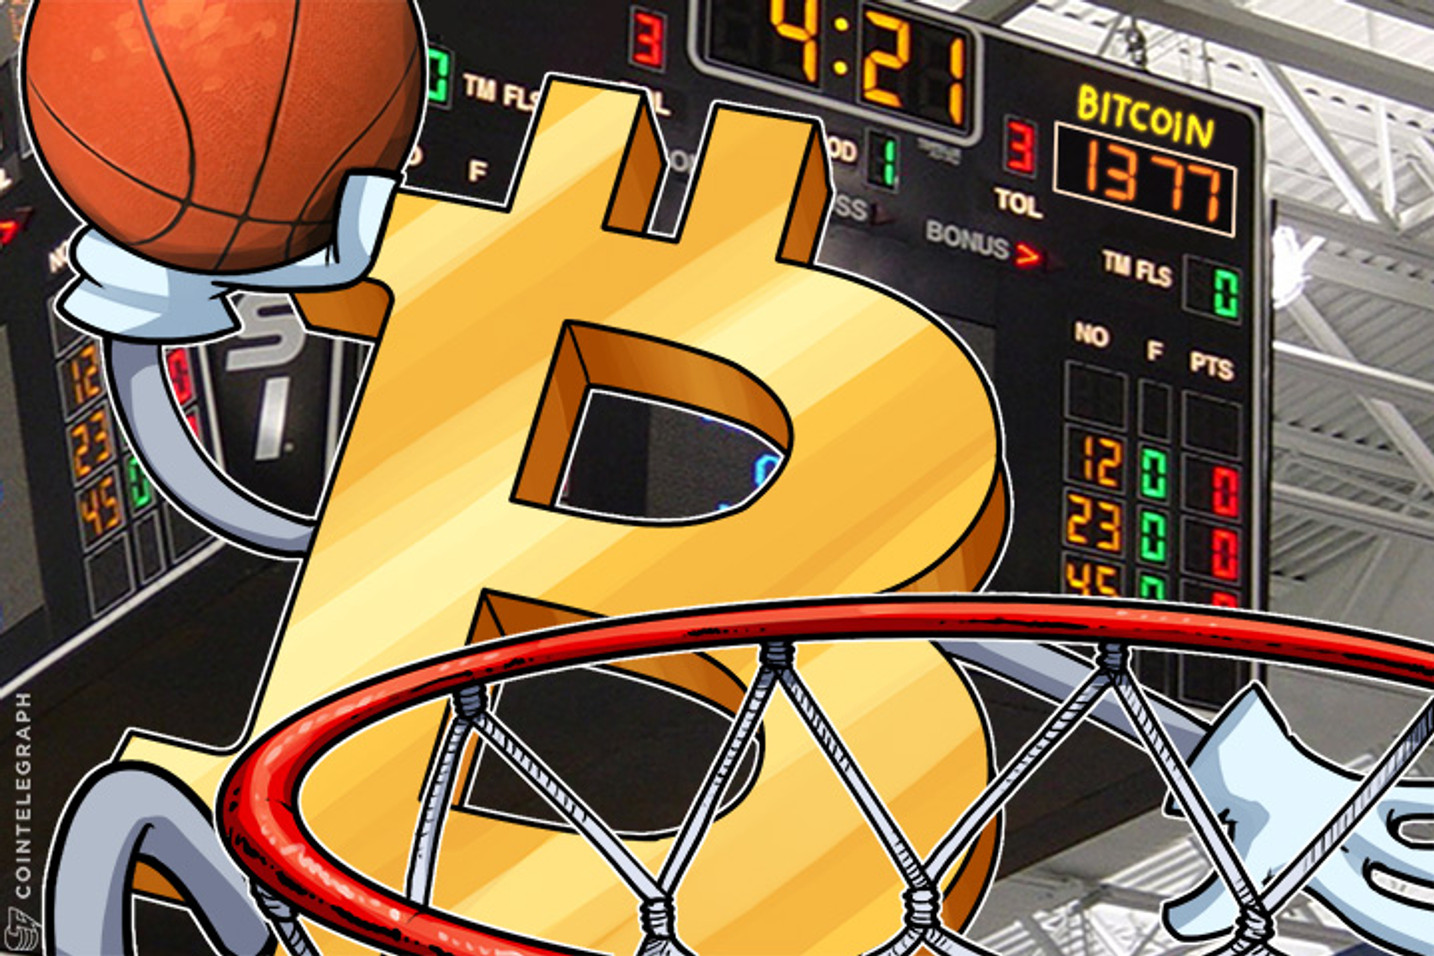 Bitcoin Price Sets New All-Time High at $1,377: Main Factors